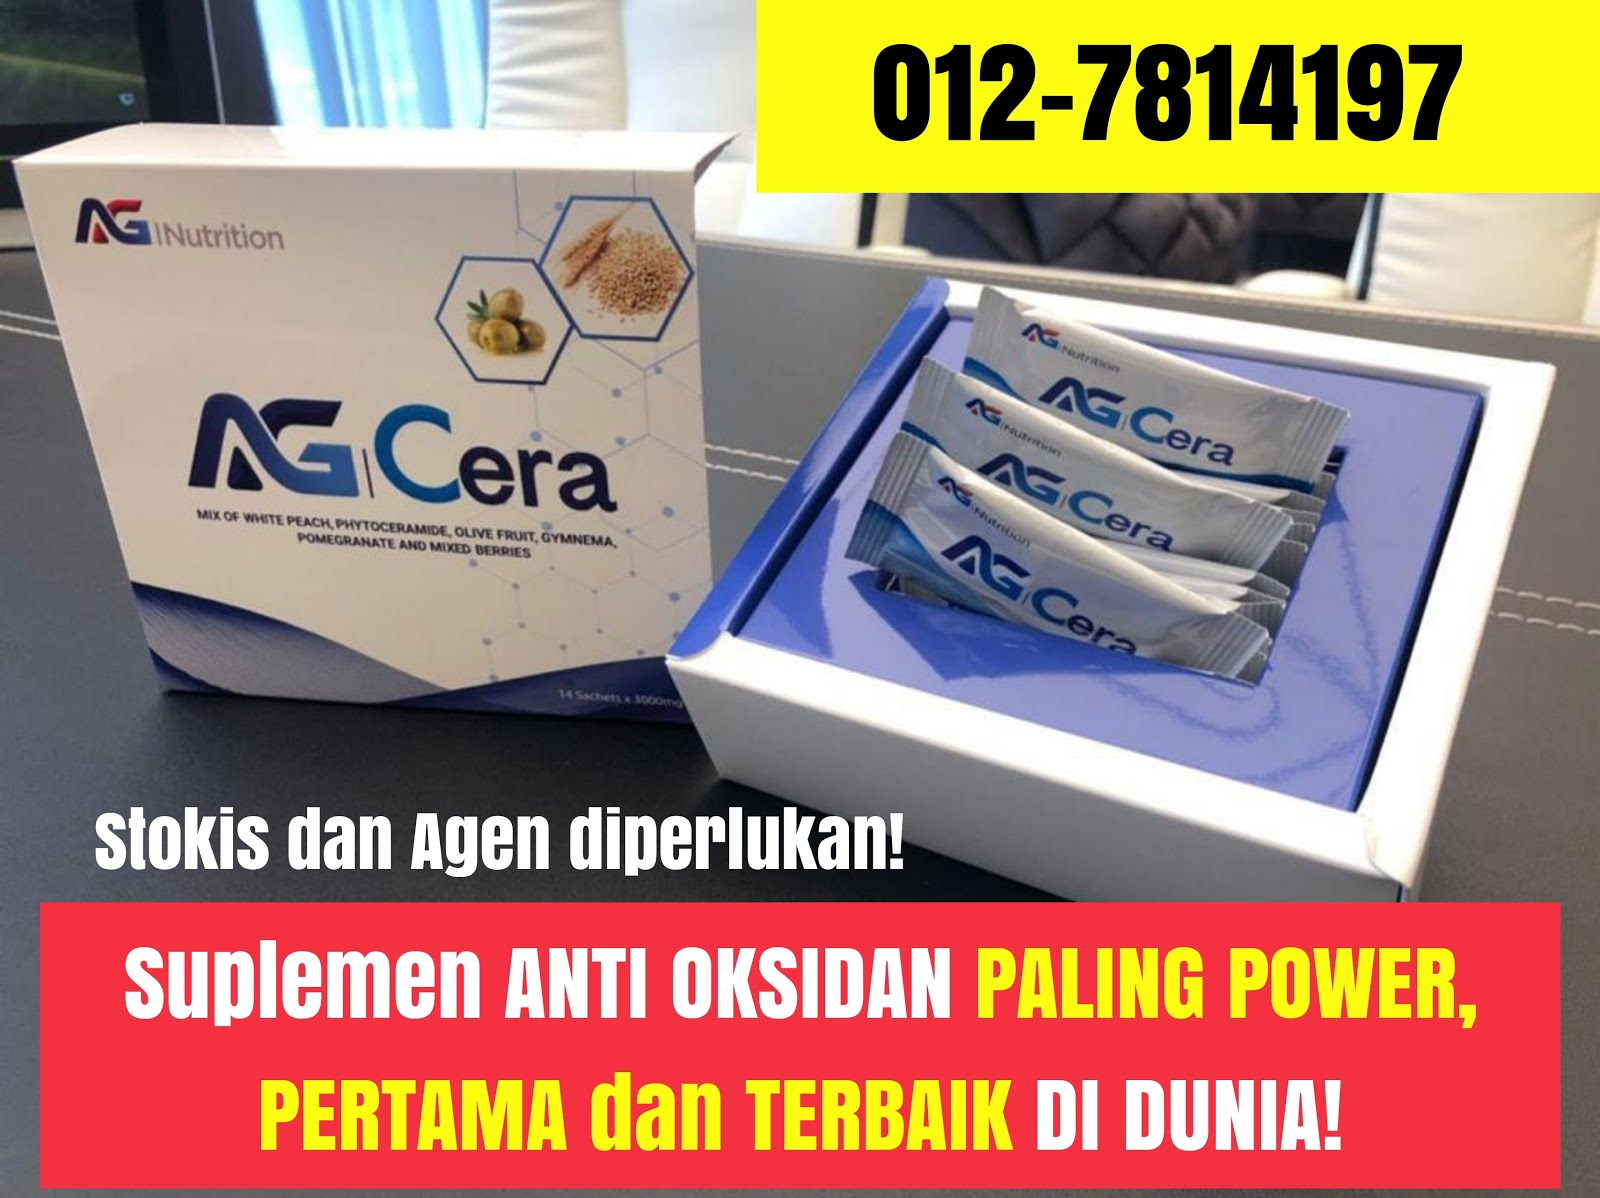 WHATSAPP 012-7814197